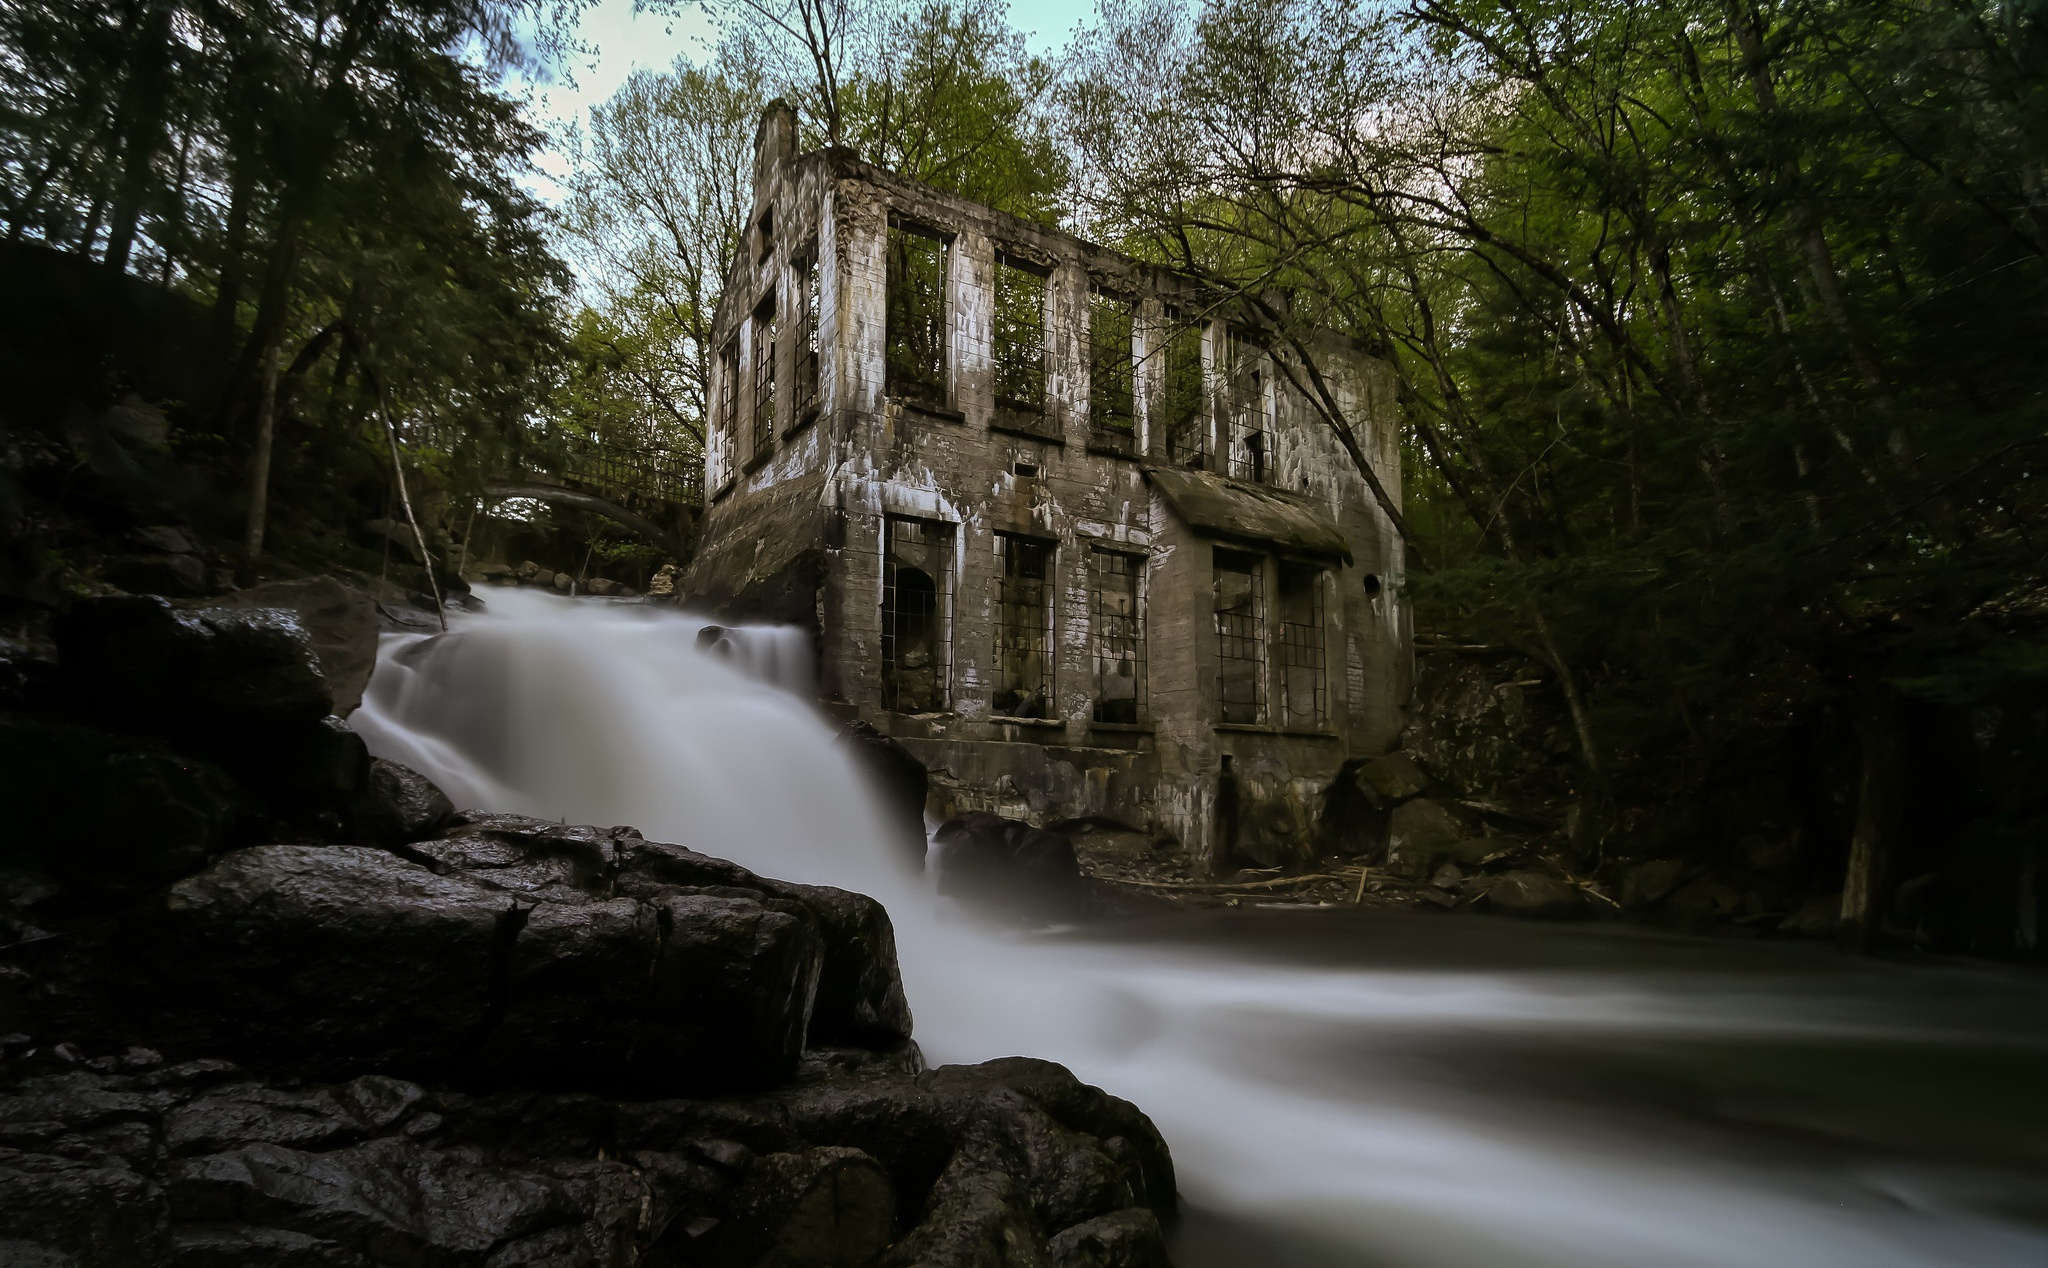 General 2048x1268 ruin house abandoned river long exposure